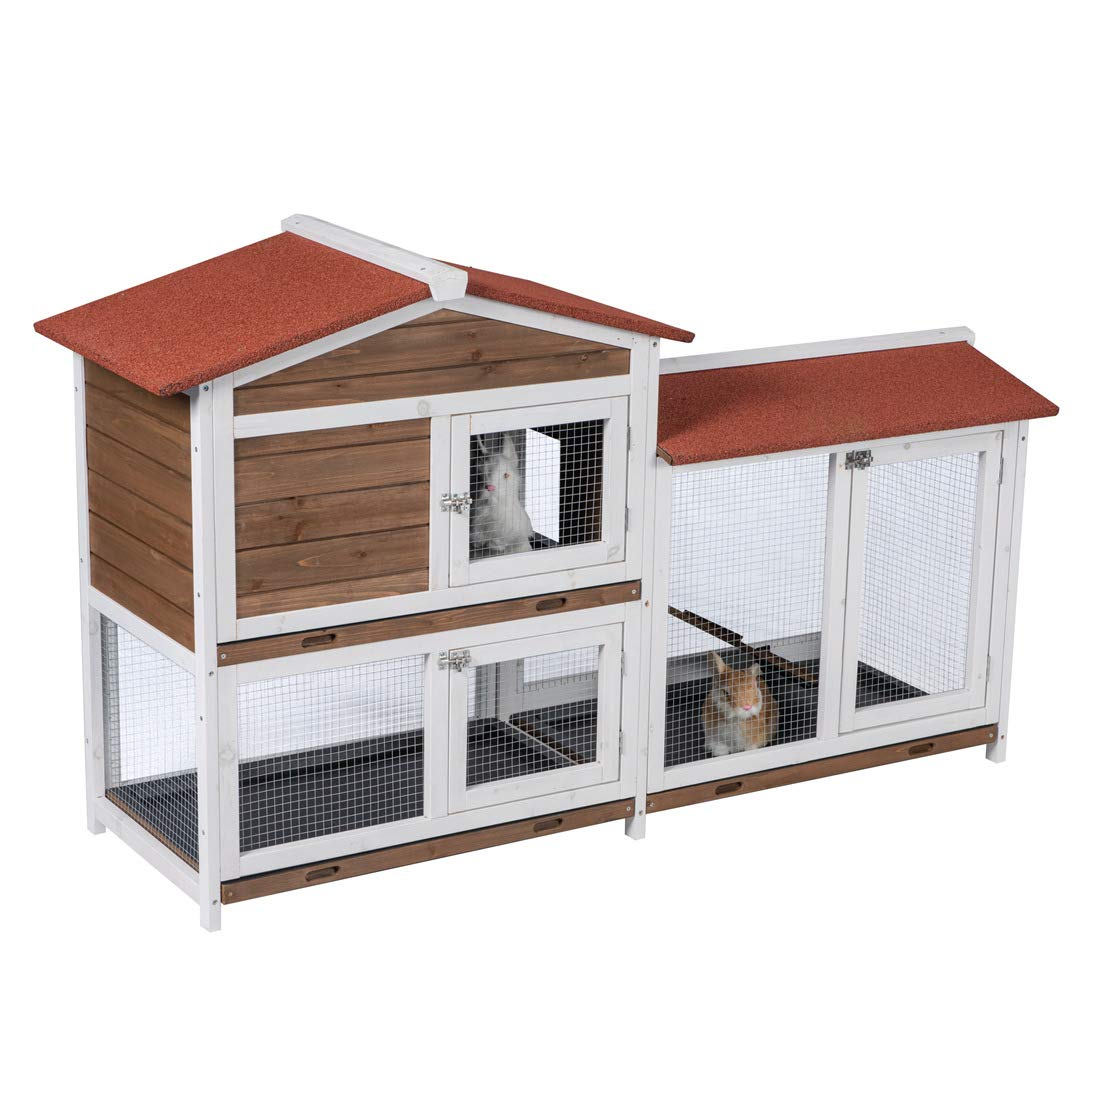 Good Life Two Floors Wooden Outdoor Indoor Roof Waterproof Bunny Hutch Rabbit Cage Guinea Pig Coop PET House for Small to Middle Animals with Stairs and 3 Cleaning Tray by GOOD LIFE USA (Image #5)